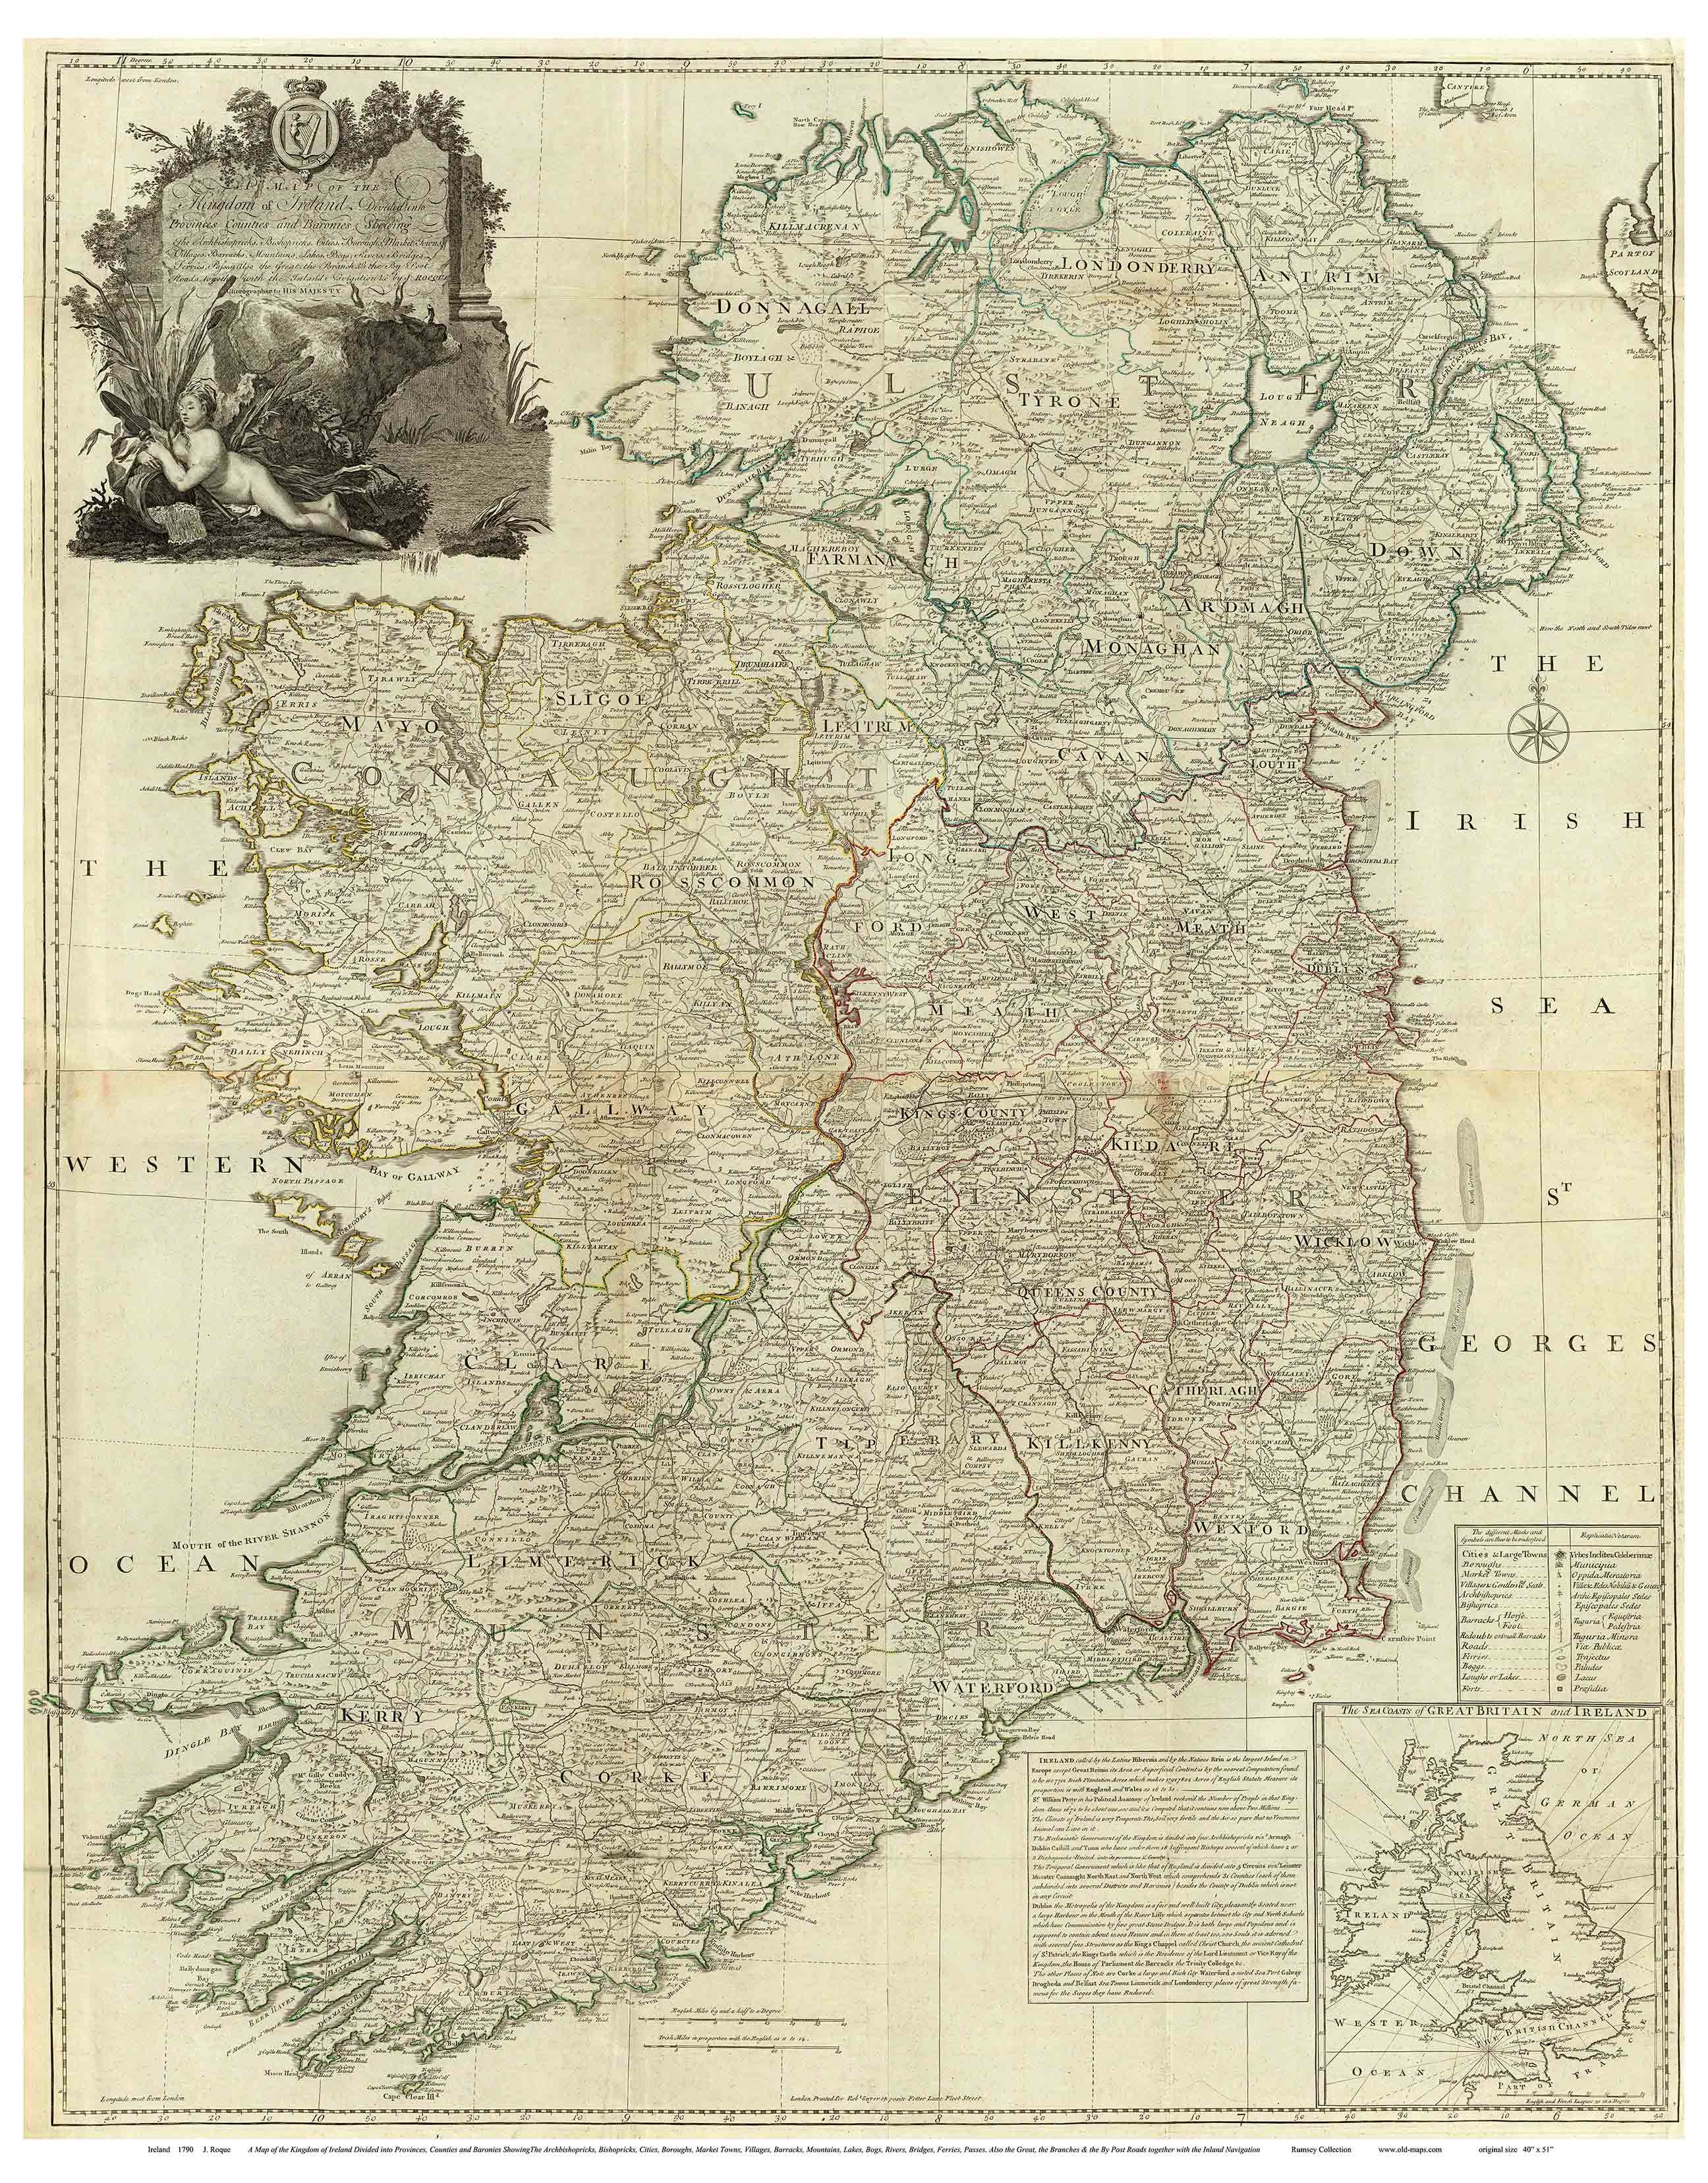 Old Maps Of Ireland 1790 Roque A Map Of The Kingdom Of Ireland Divided Into Provinces Counties And Baronies Showing Ireland Map Old Maps Vintage World Maps